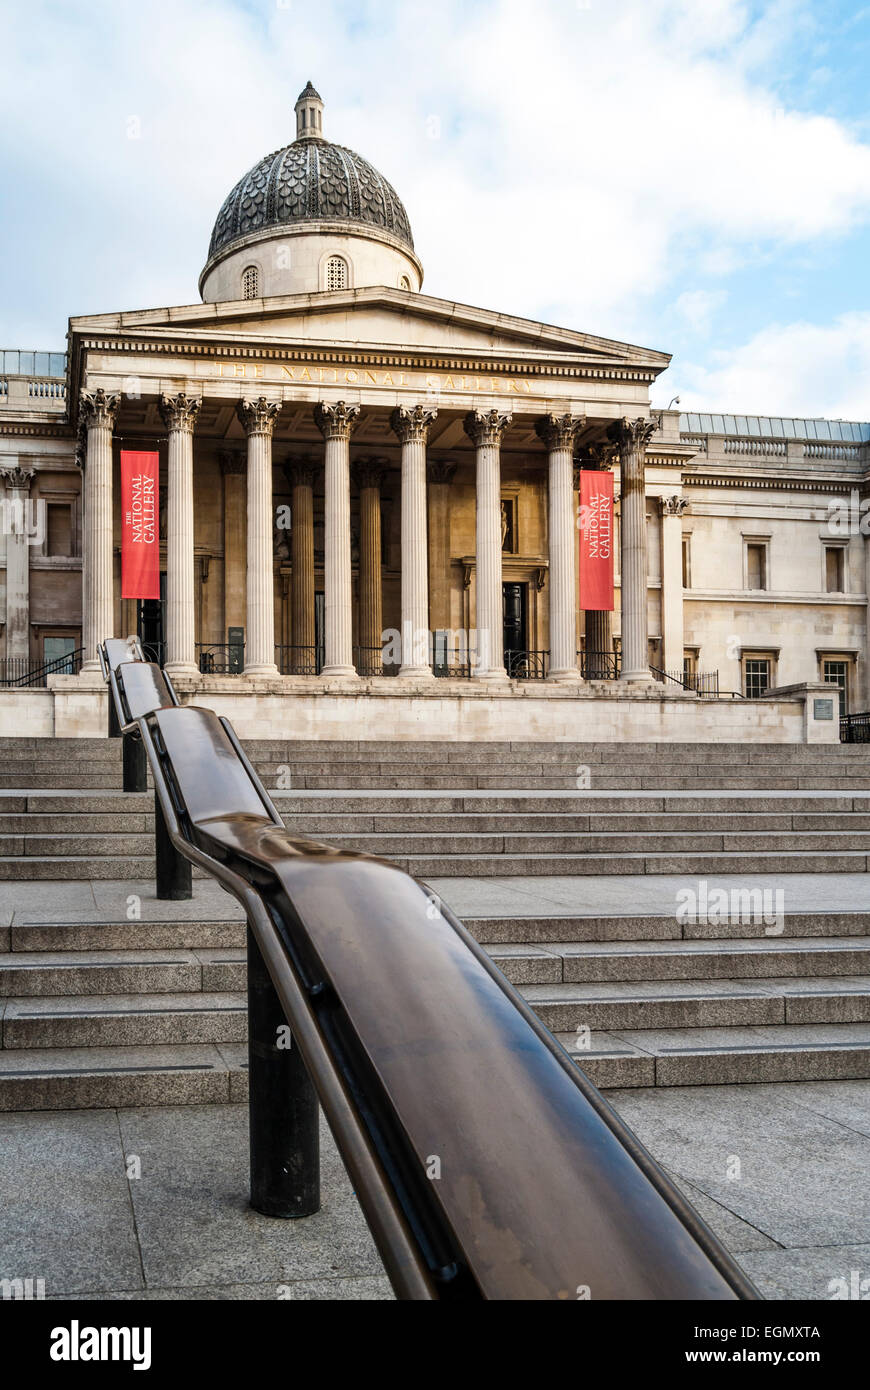 The National Gallery in London, one of the most visited art museums in the world, here on a quiet Sunday morning. Stock Photo